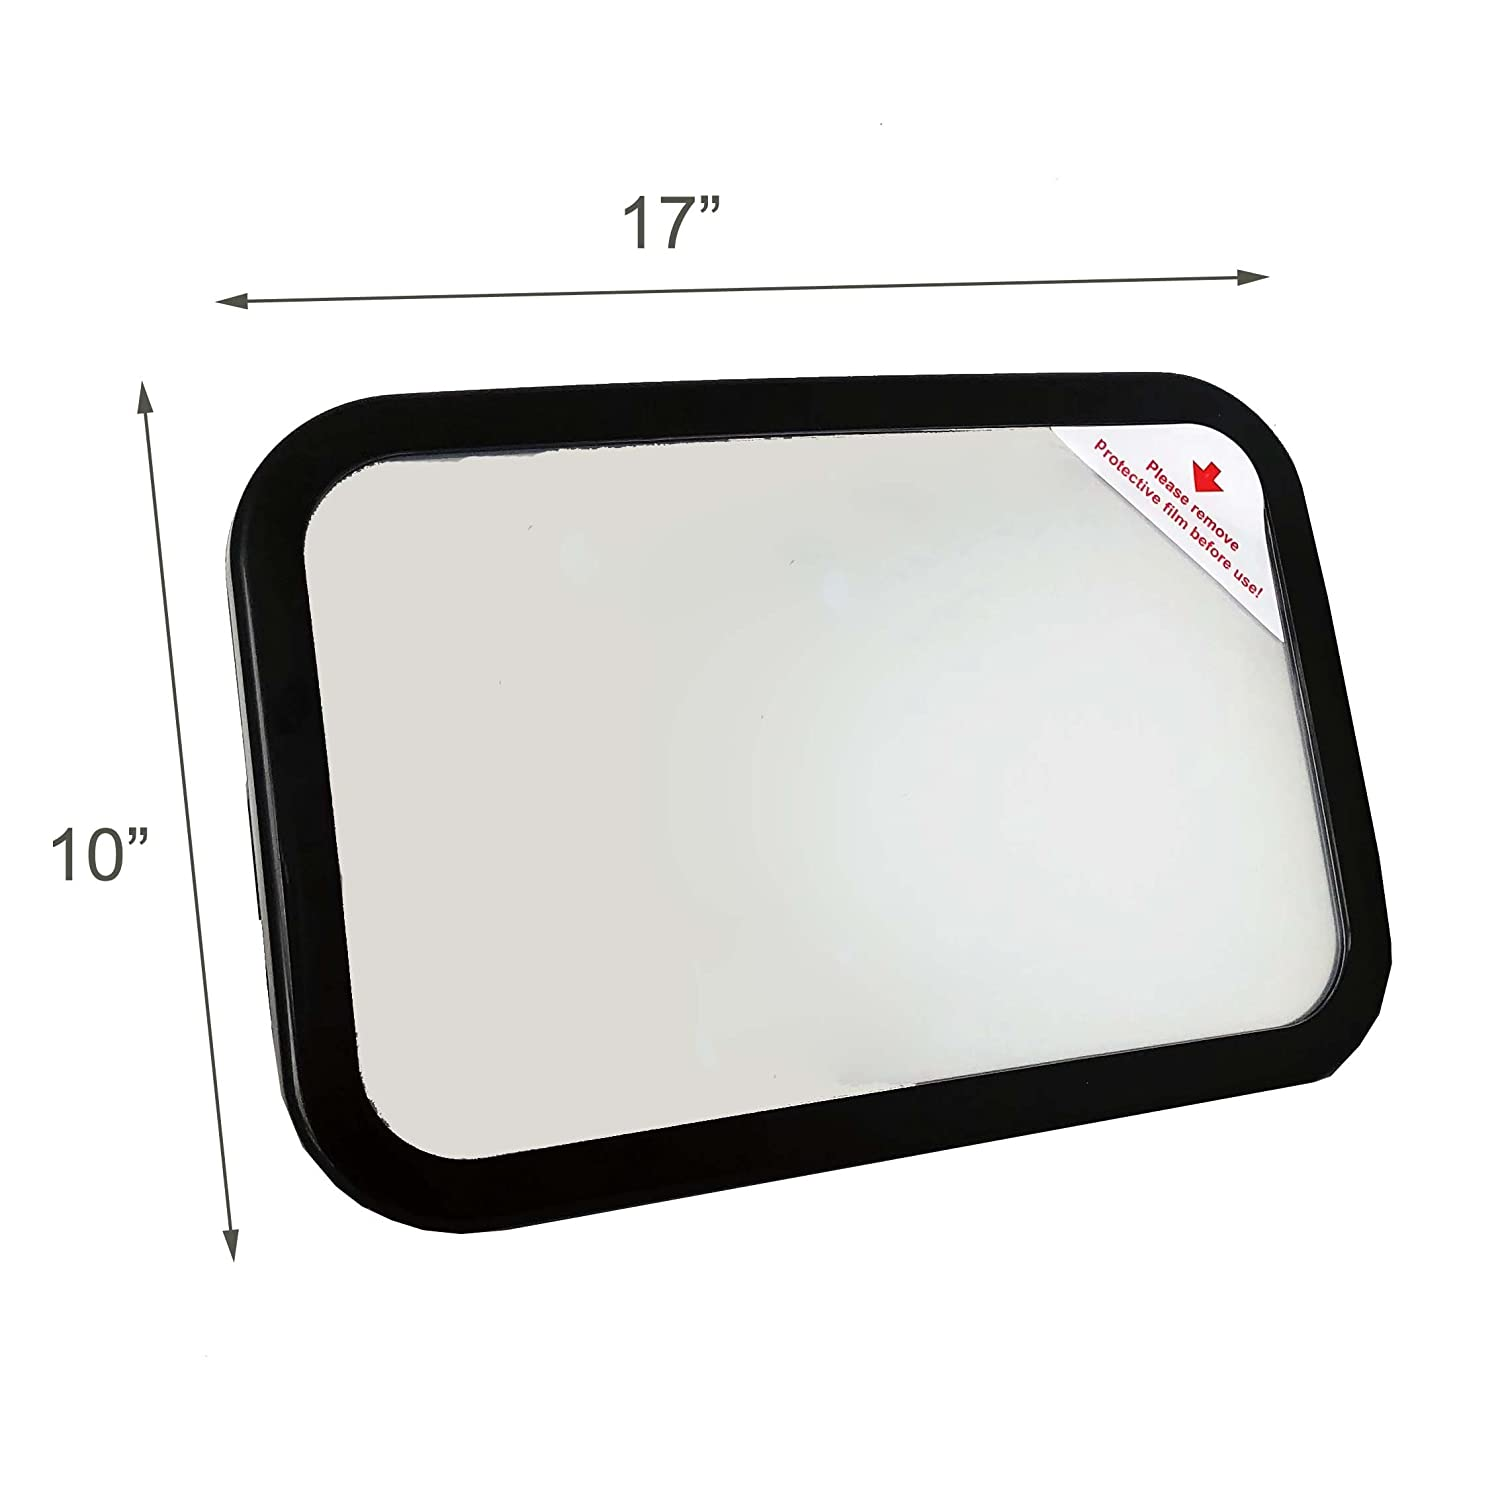 Essential Car Seat Acc Clearest and Most Stable Mirror View Infant in Rear Facing Car Seat With FREE Cleaning Cloth Sturdy Bracket Mirror for Car Seat Rear Facing Strengthen Fixed Baby Car Mirror